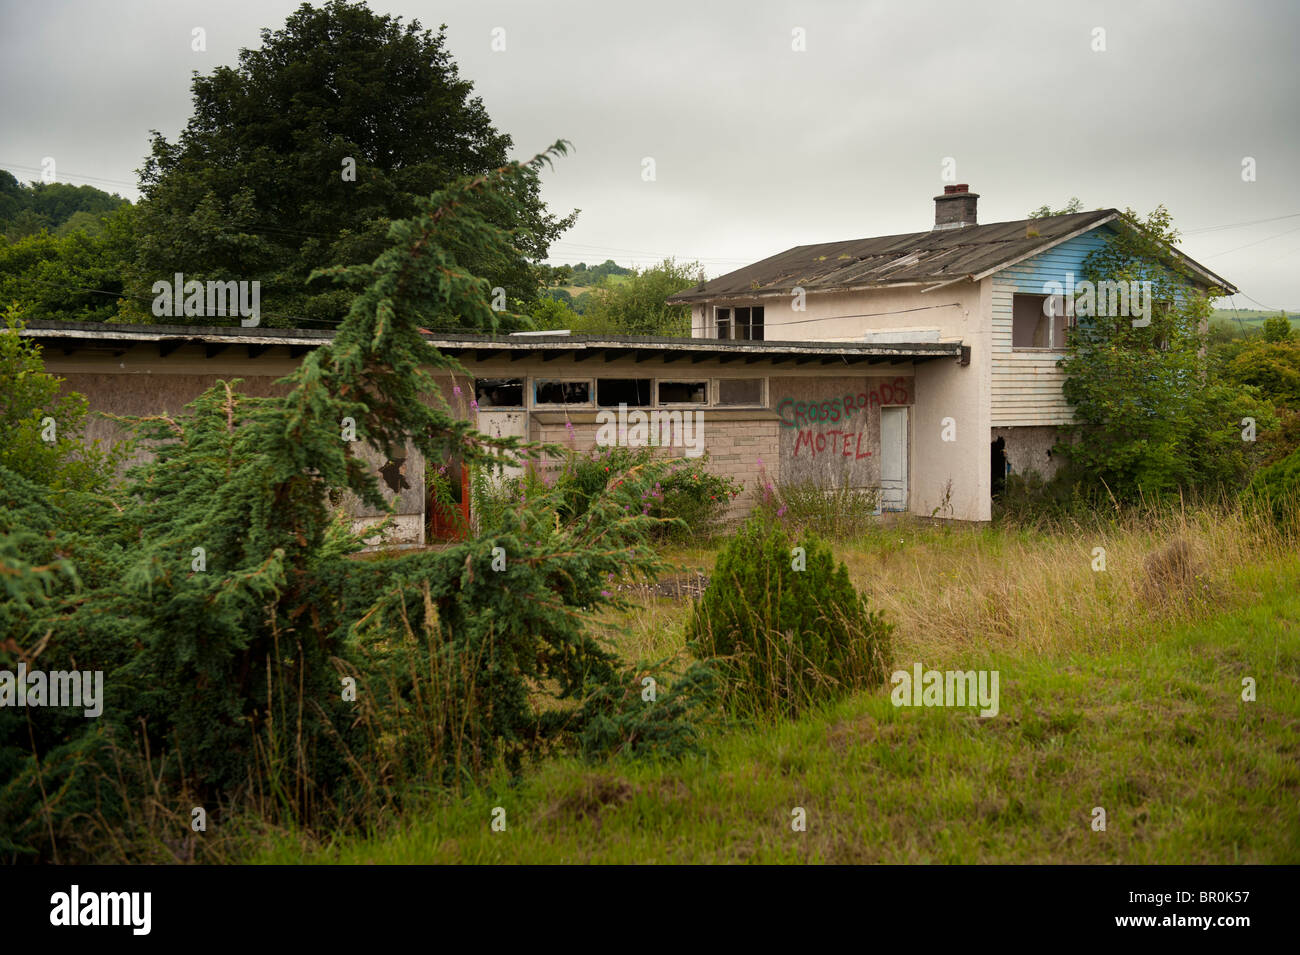 abandoned motel on the A40 near Llywel, POwys Mid Wales - Stock Image